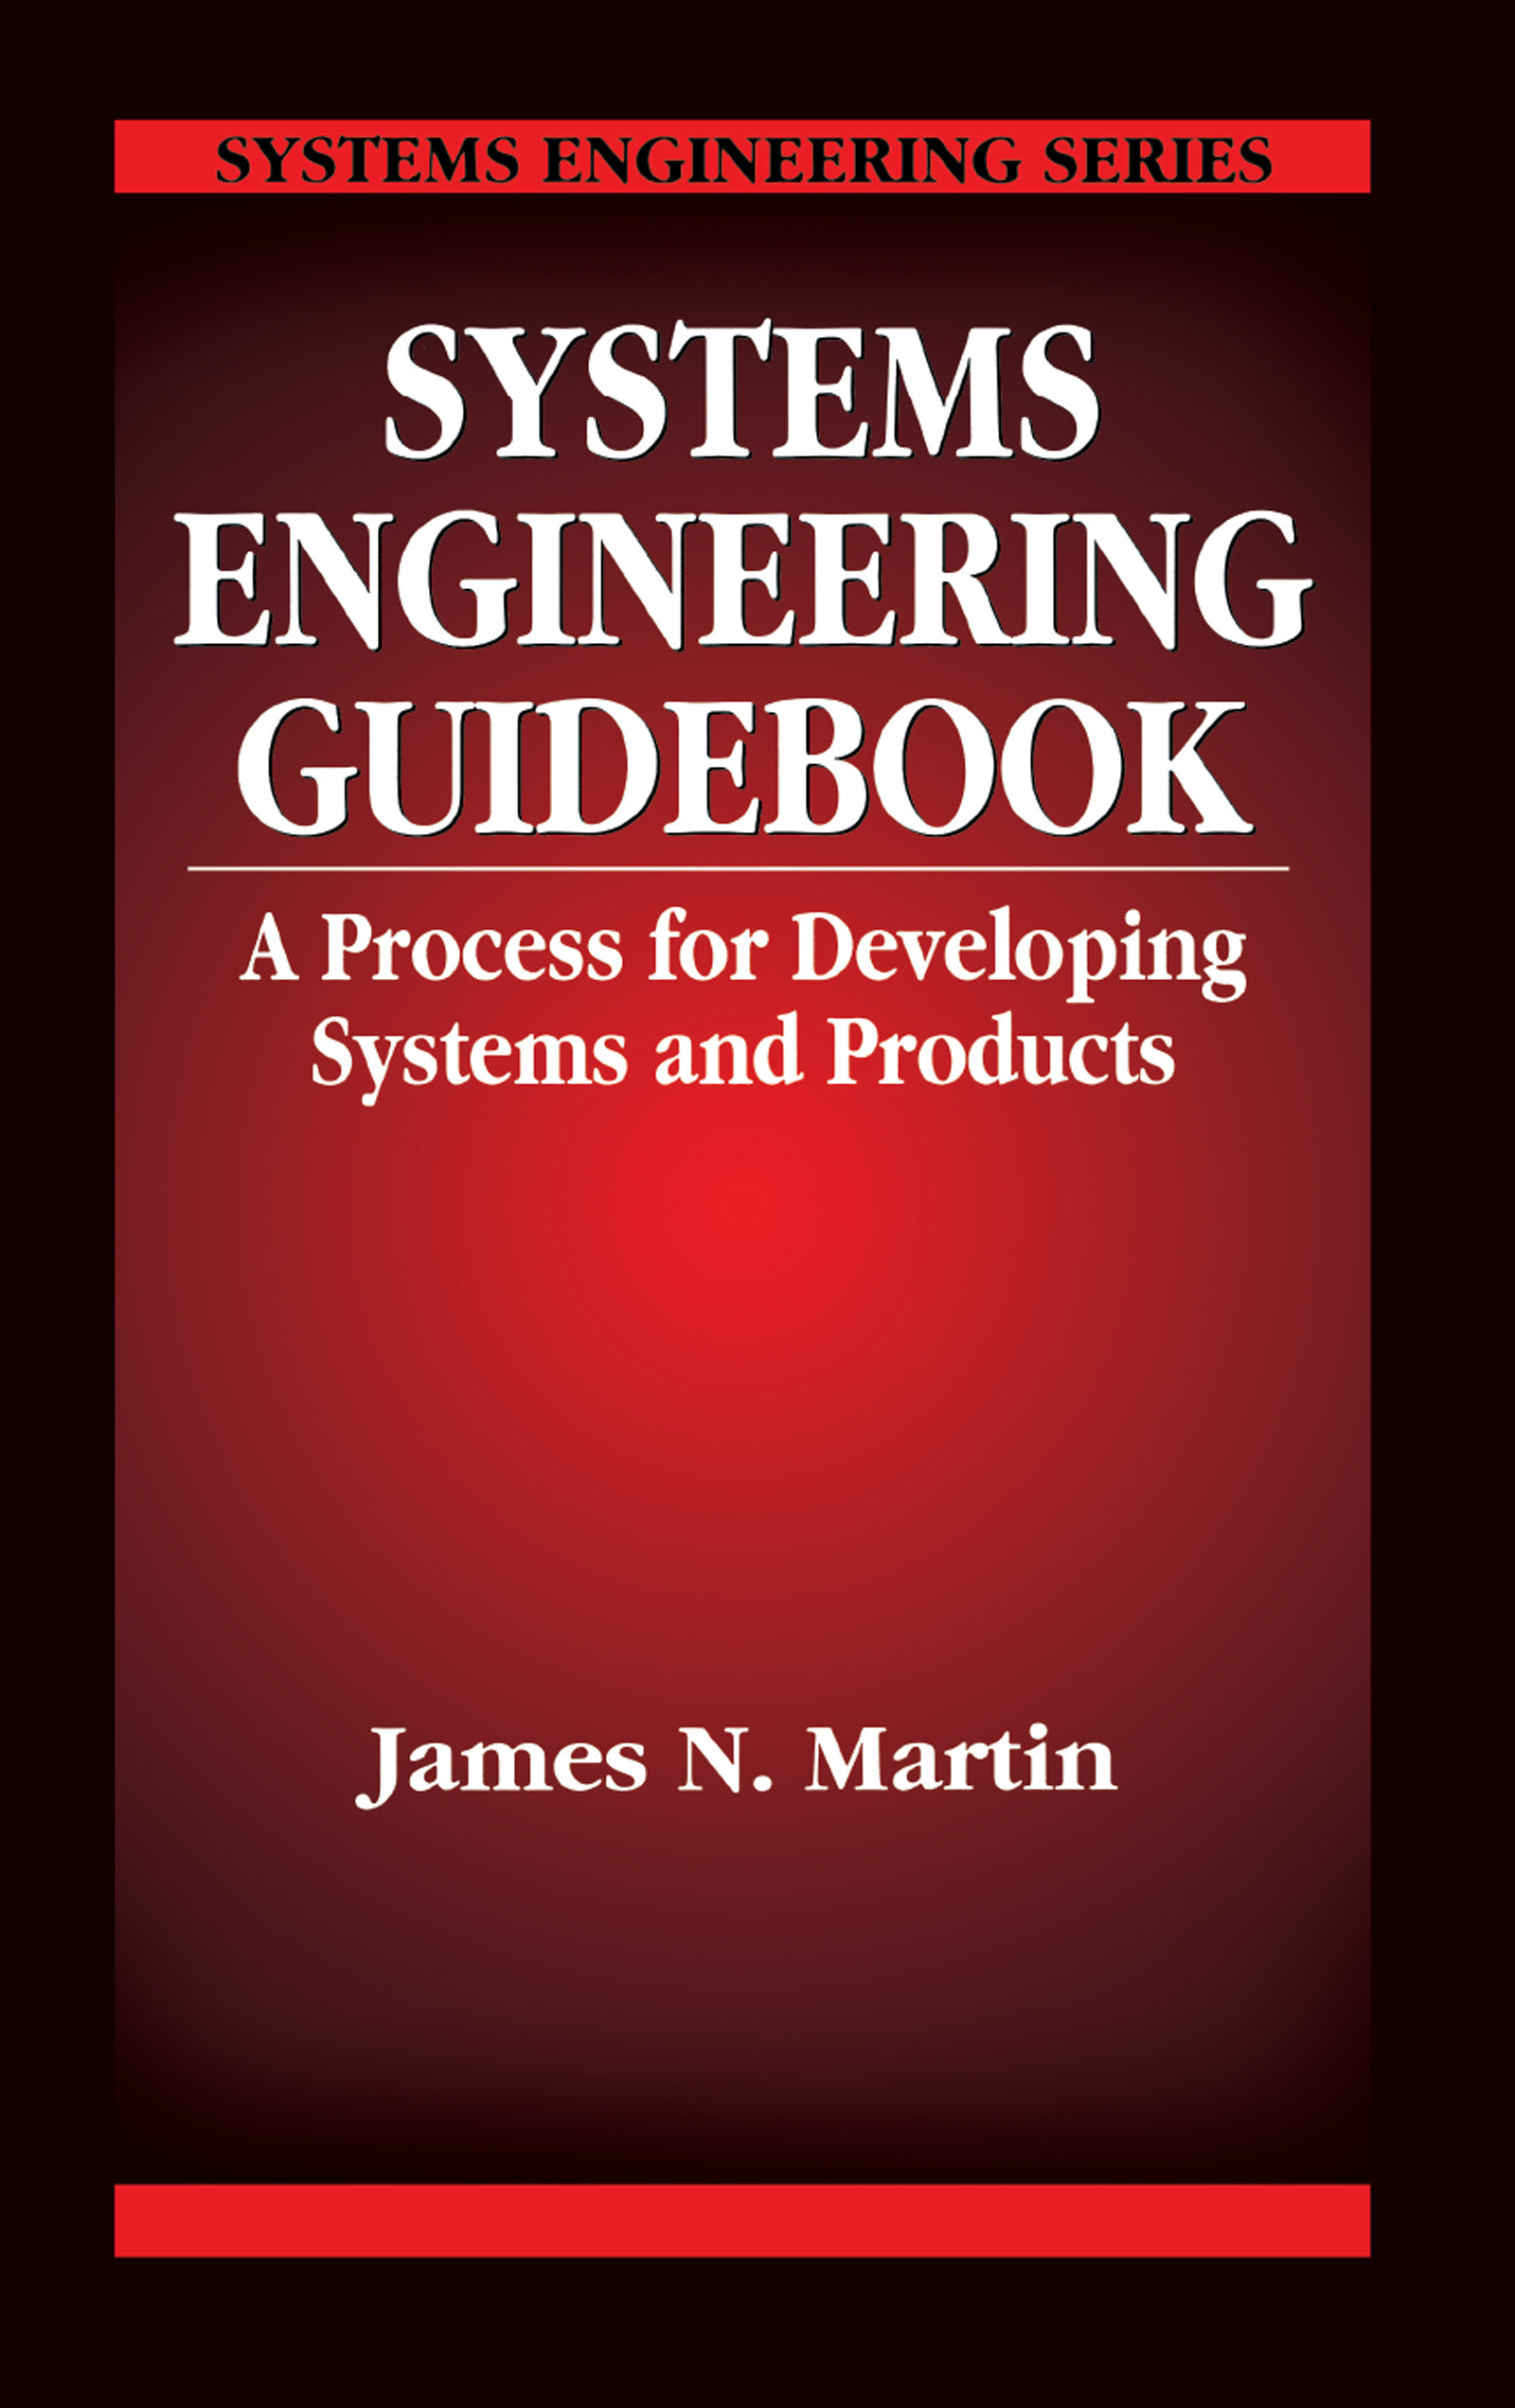 Systems Engineering Guidebook